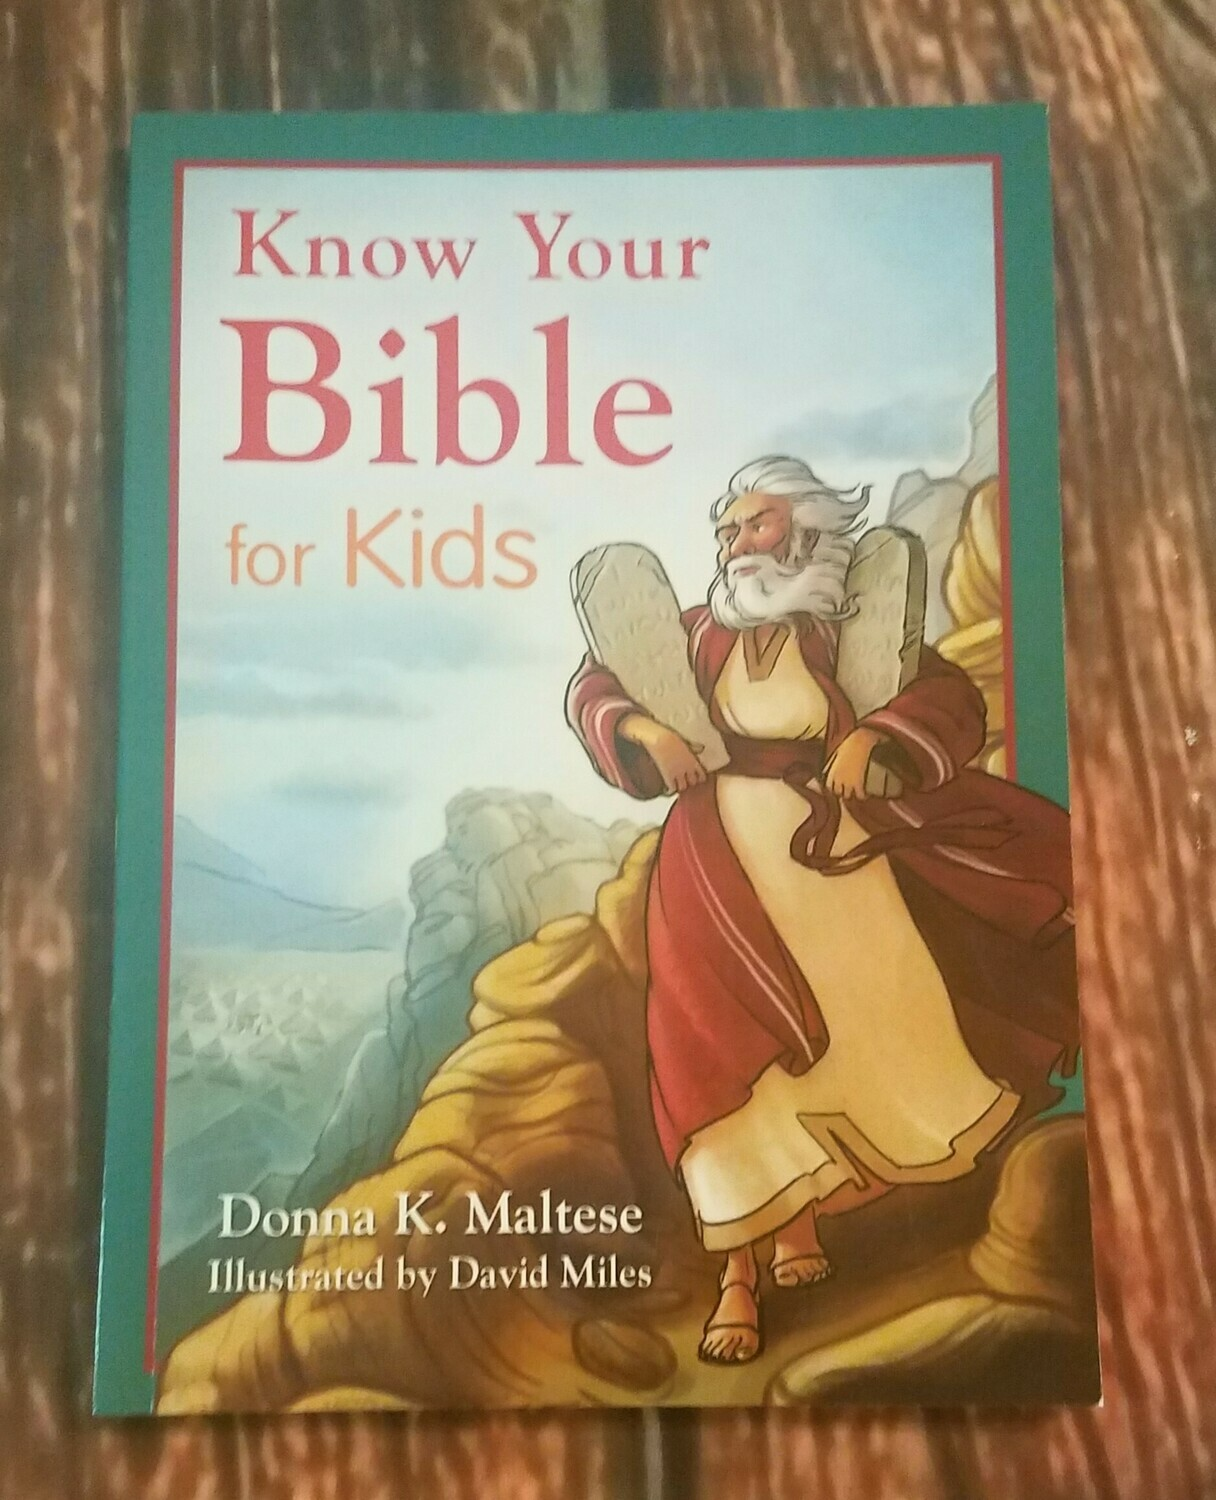 Know Your Bible for Kids by Donna K. Maltese and David Miles